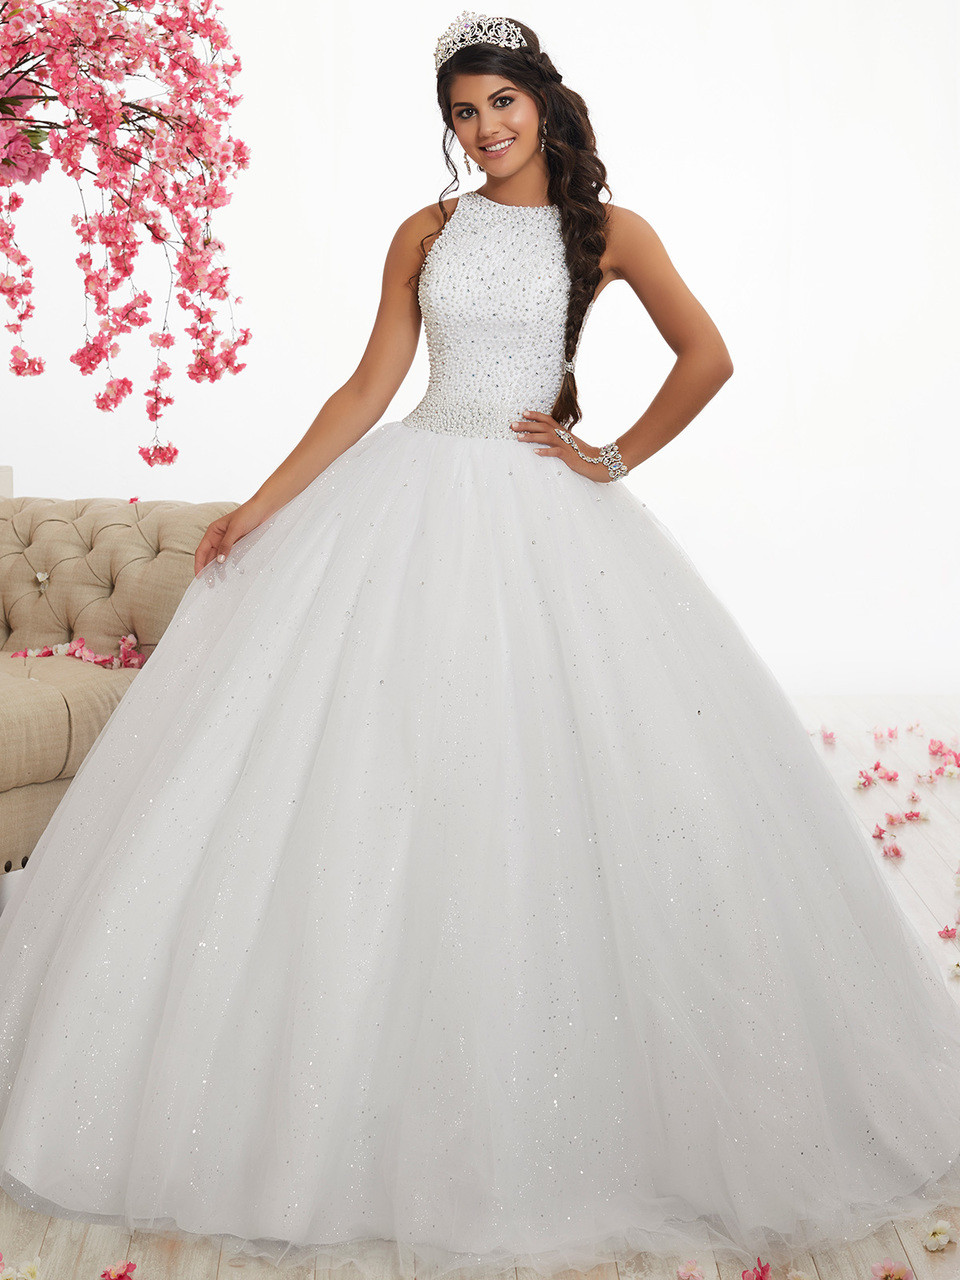 7f91817df2 white high neck ball gown quinceanera dress with pearls fiesta 56318